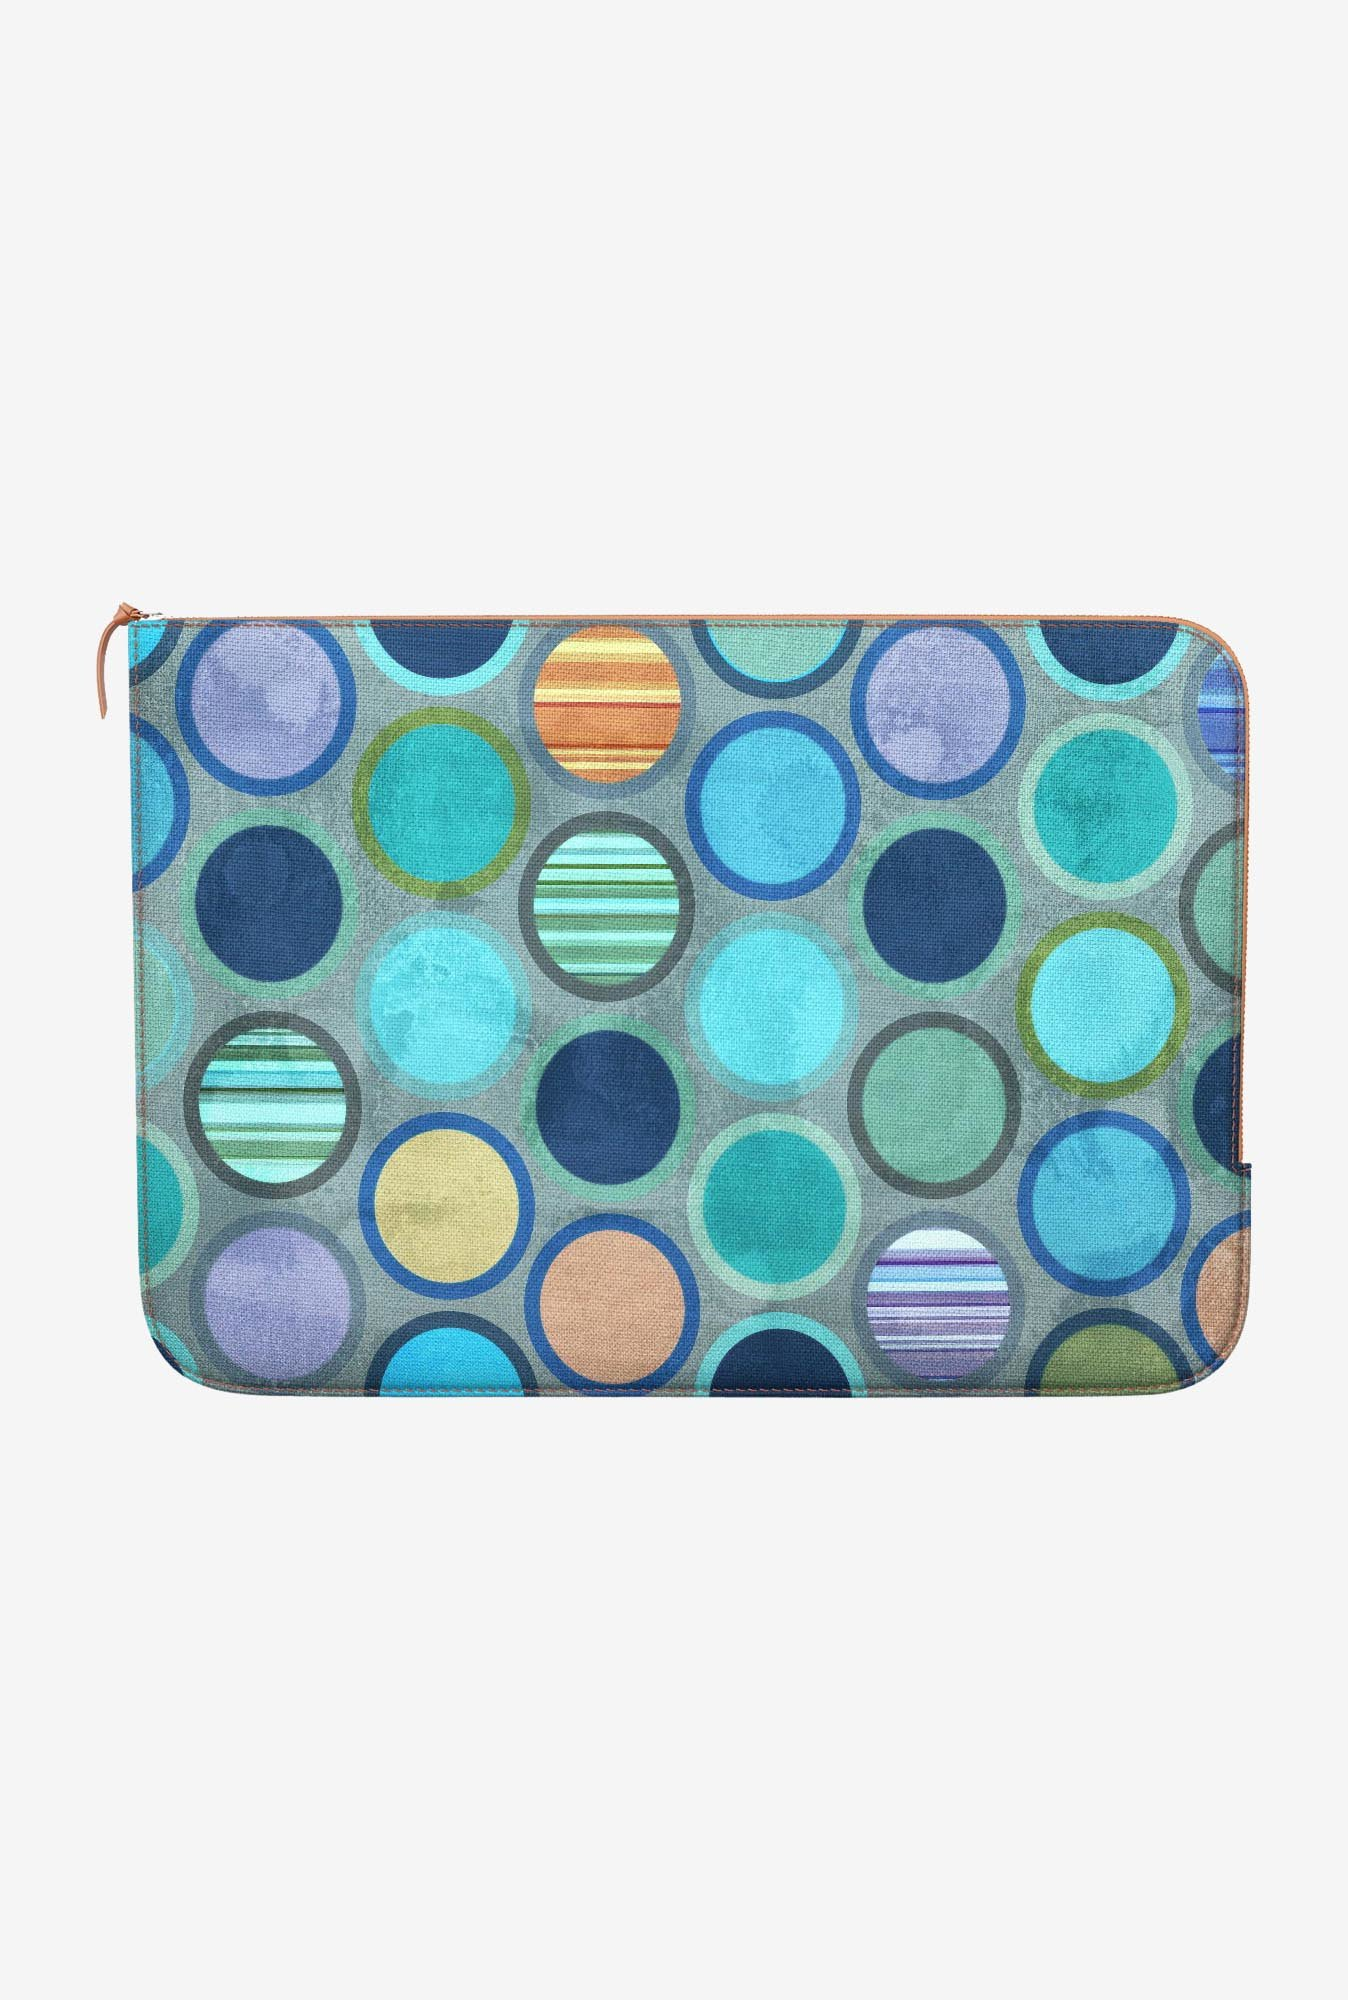 DailyObjects Paint Pots MacBook Air 13 Zippered Sleeve